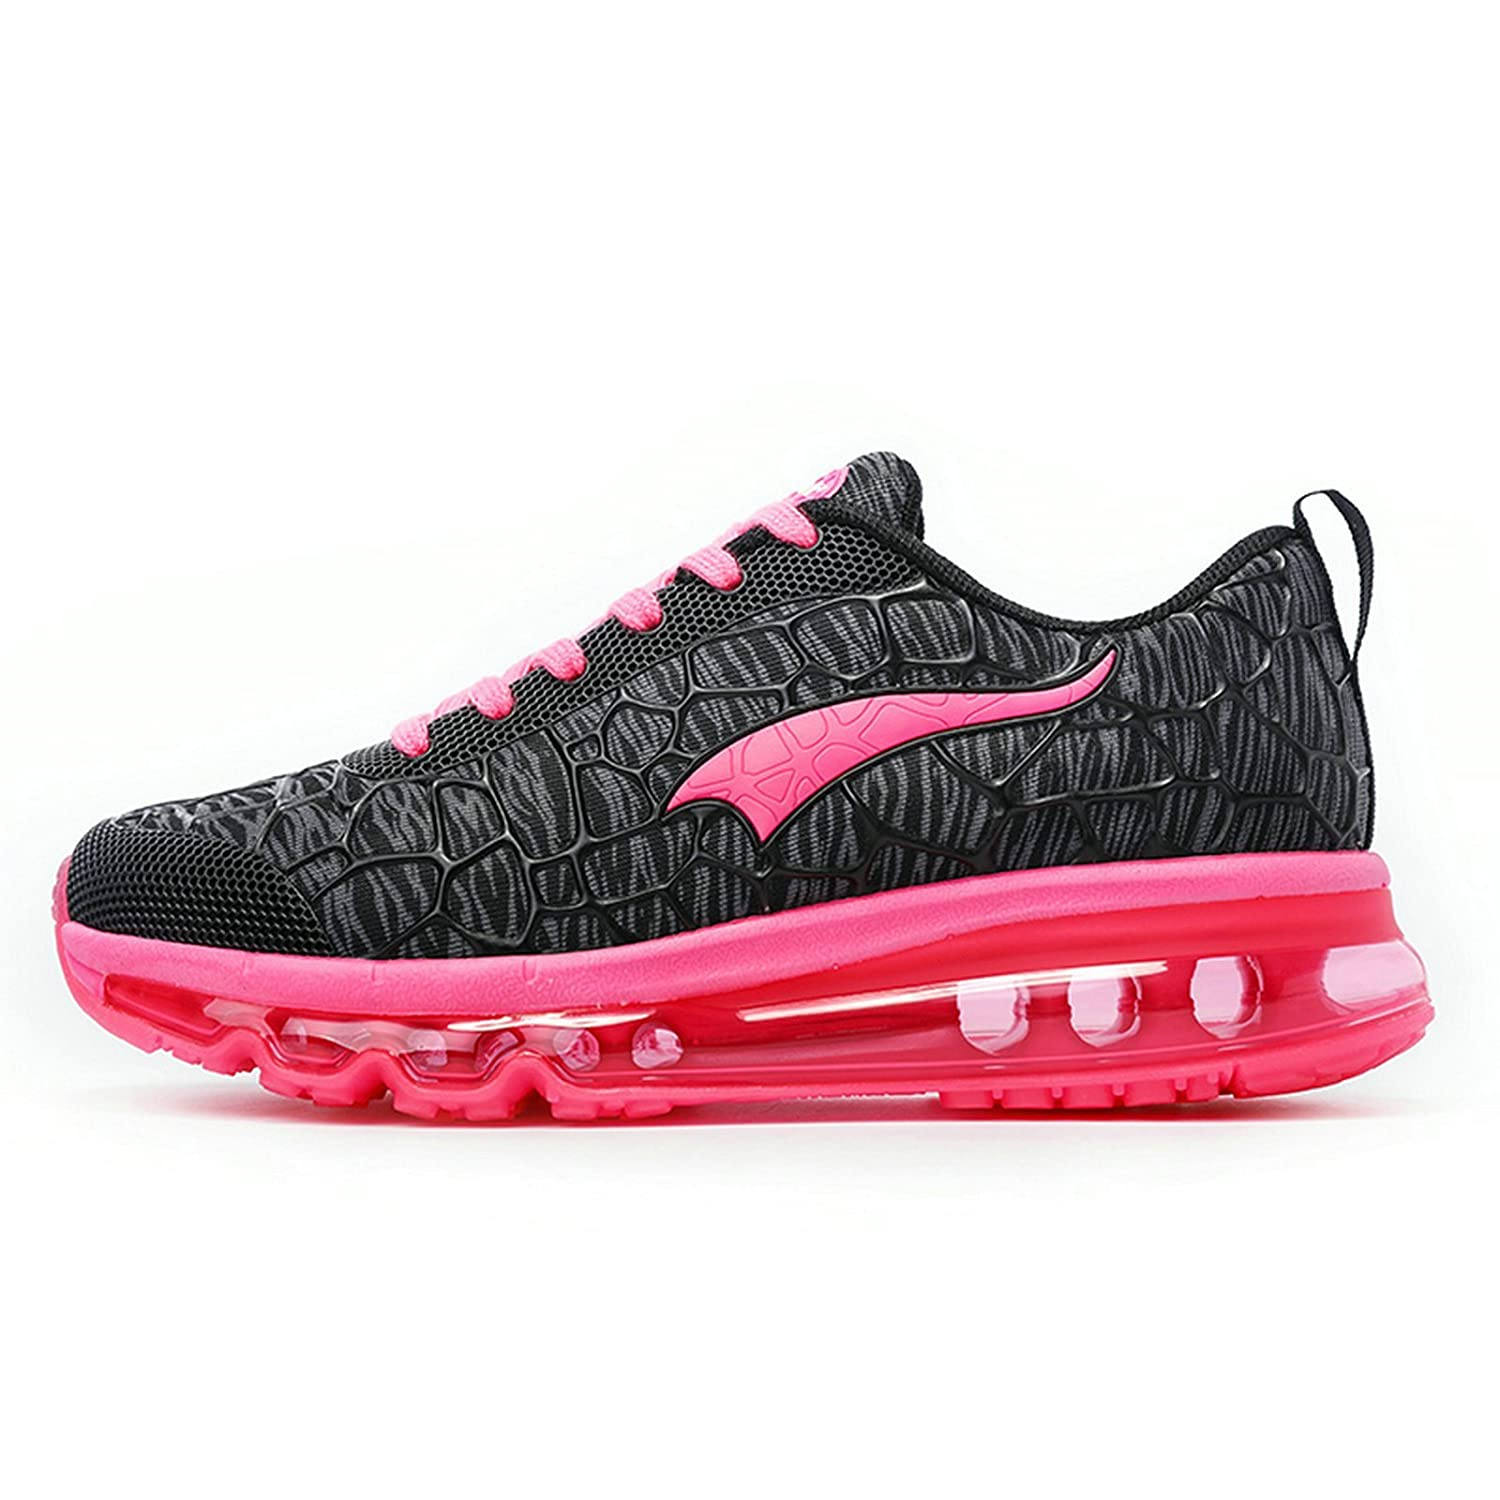 ONEMIX Women's Air Cushion Running Shoes Lightweight Walking Jogging Gym  Outdoor Exercise Drive Athletic Sneakers